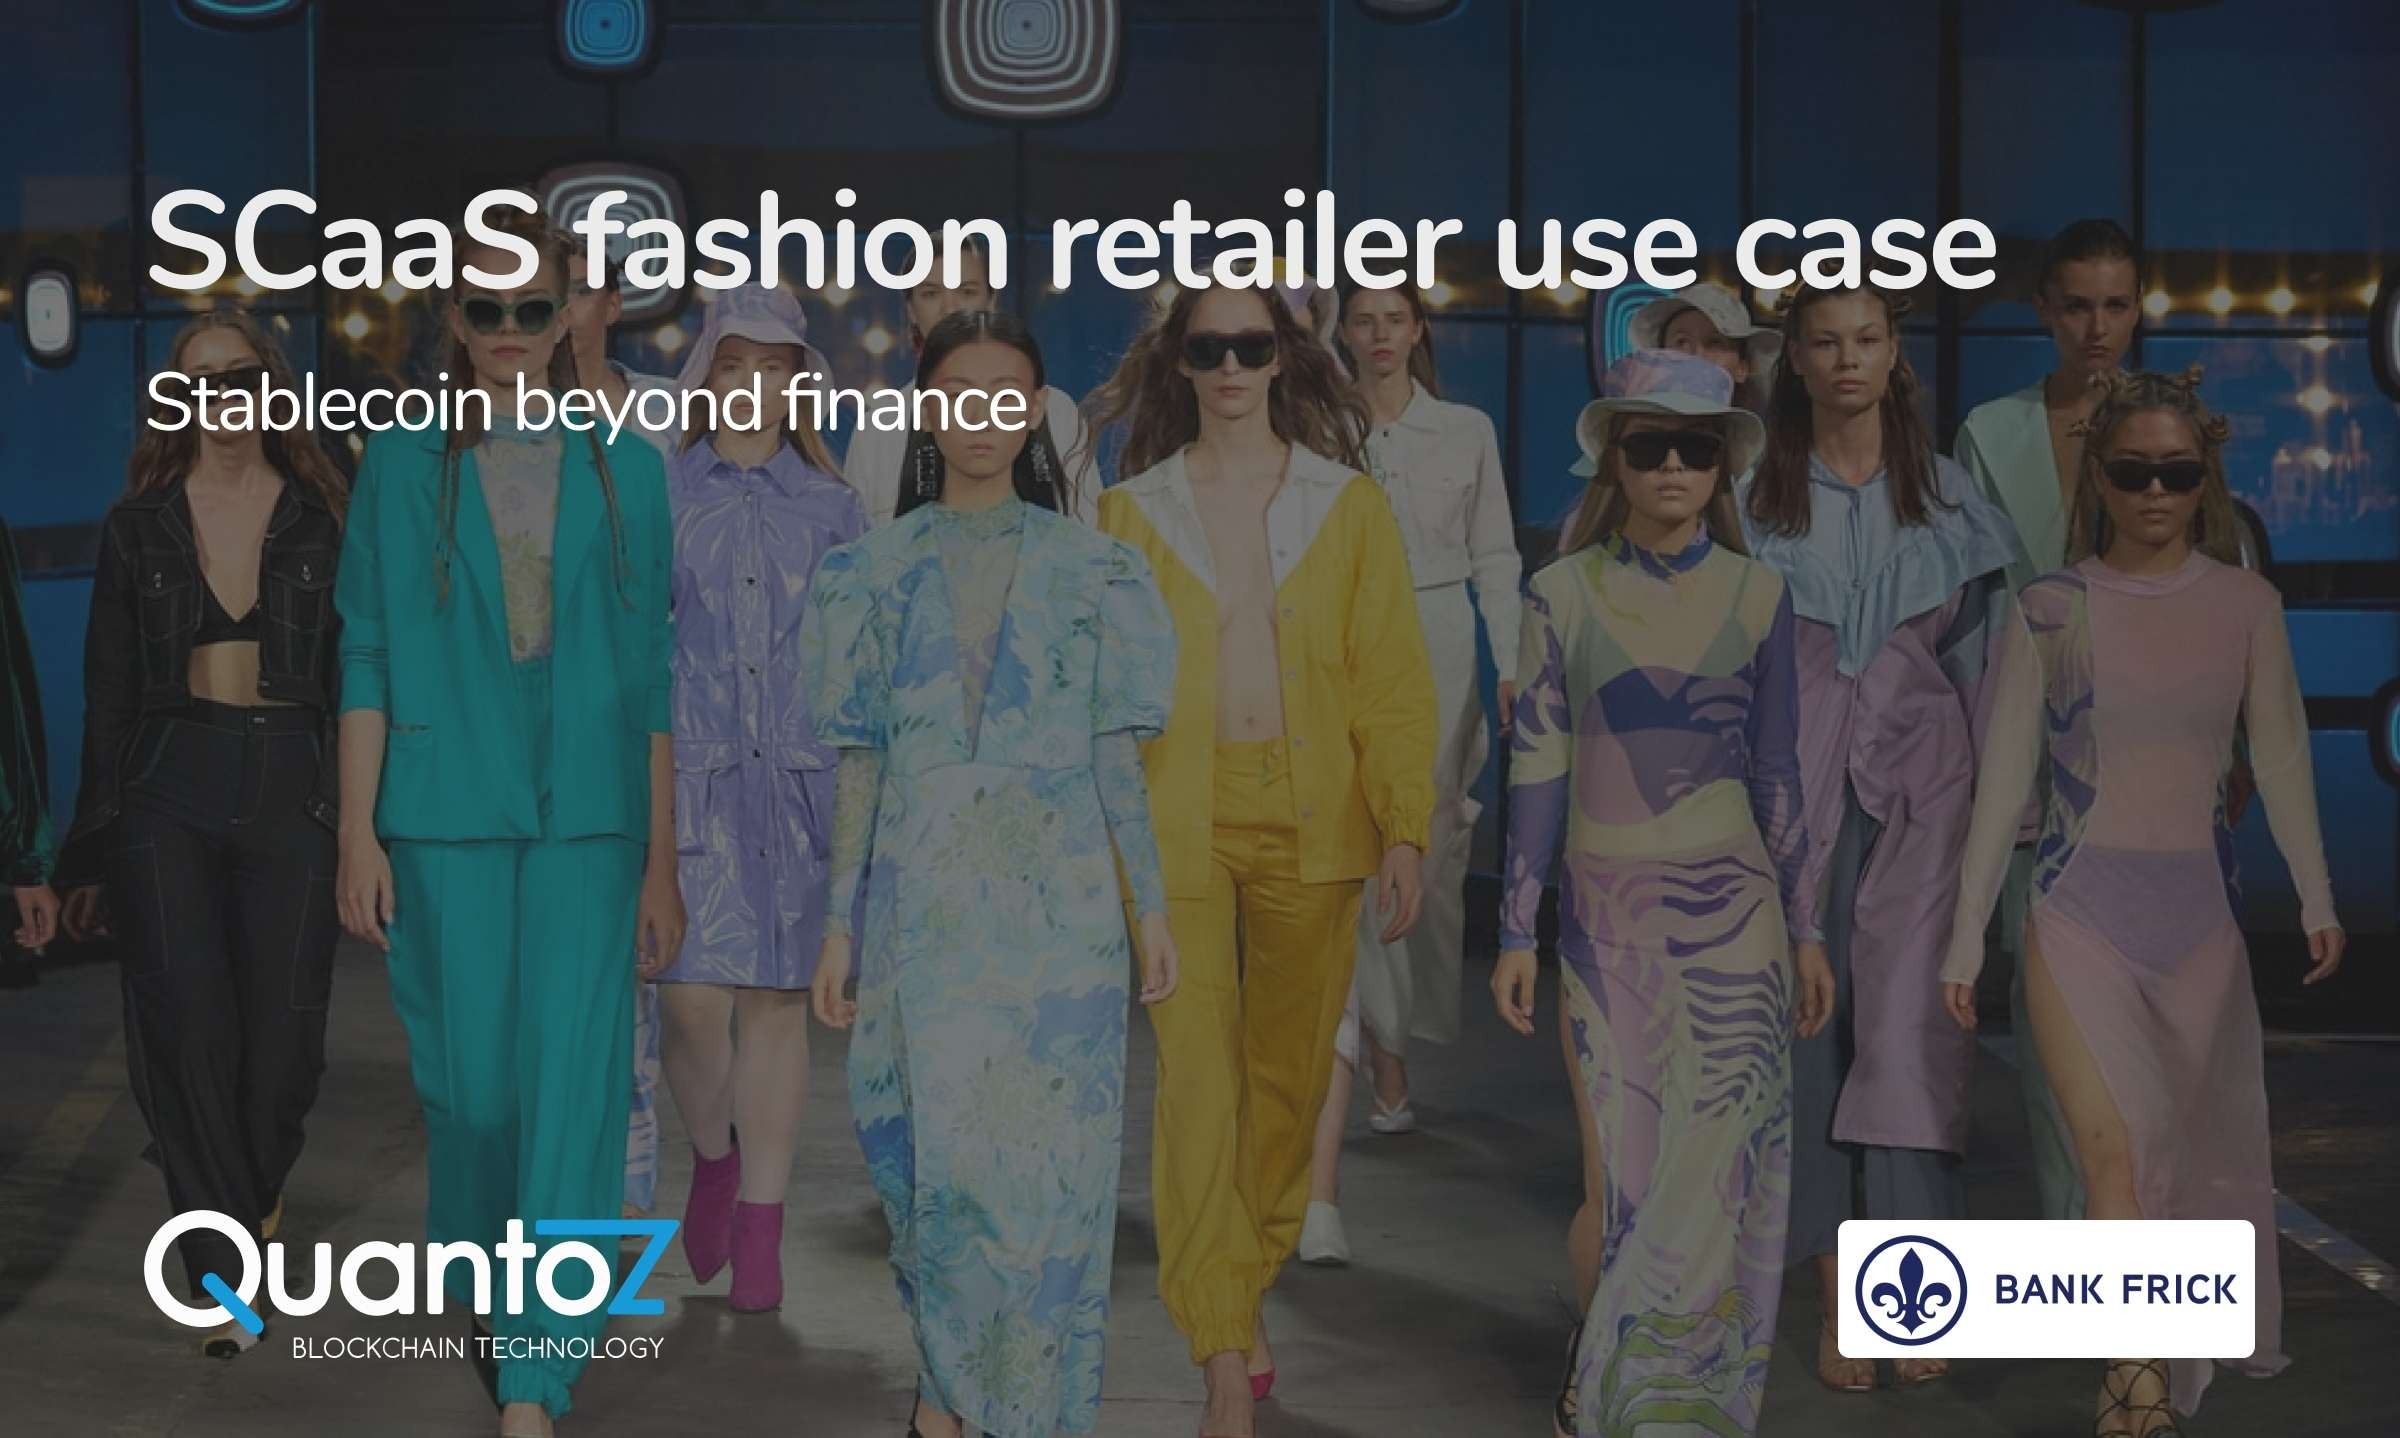 Stablecoins for fashion retailers